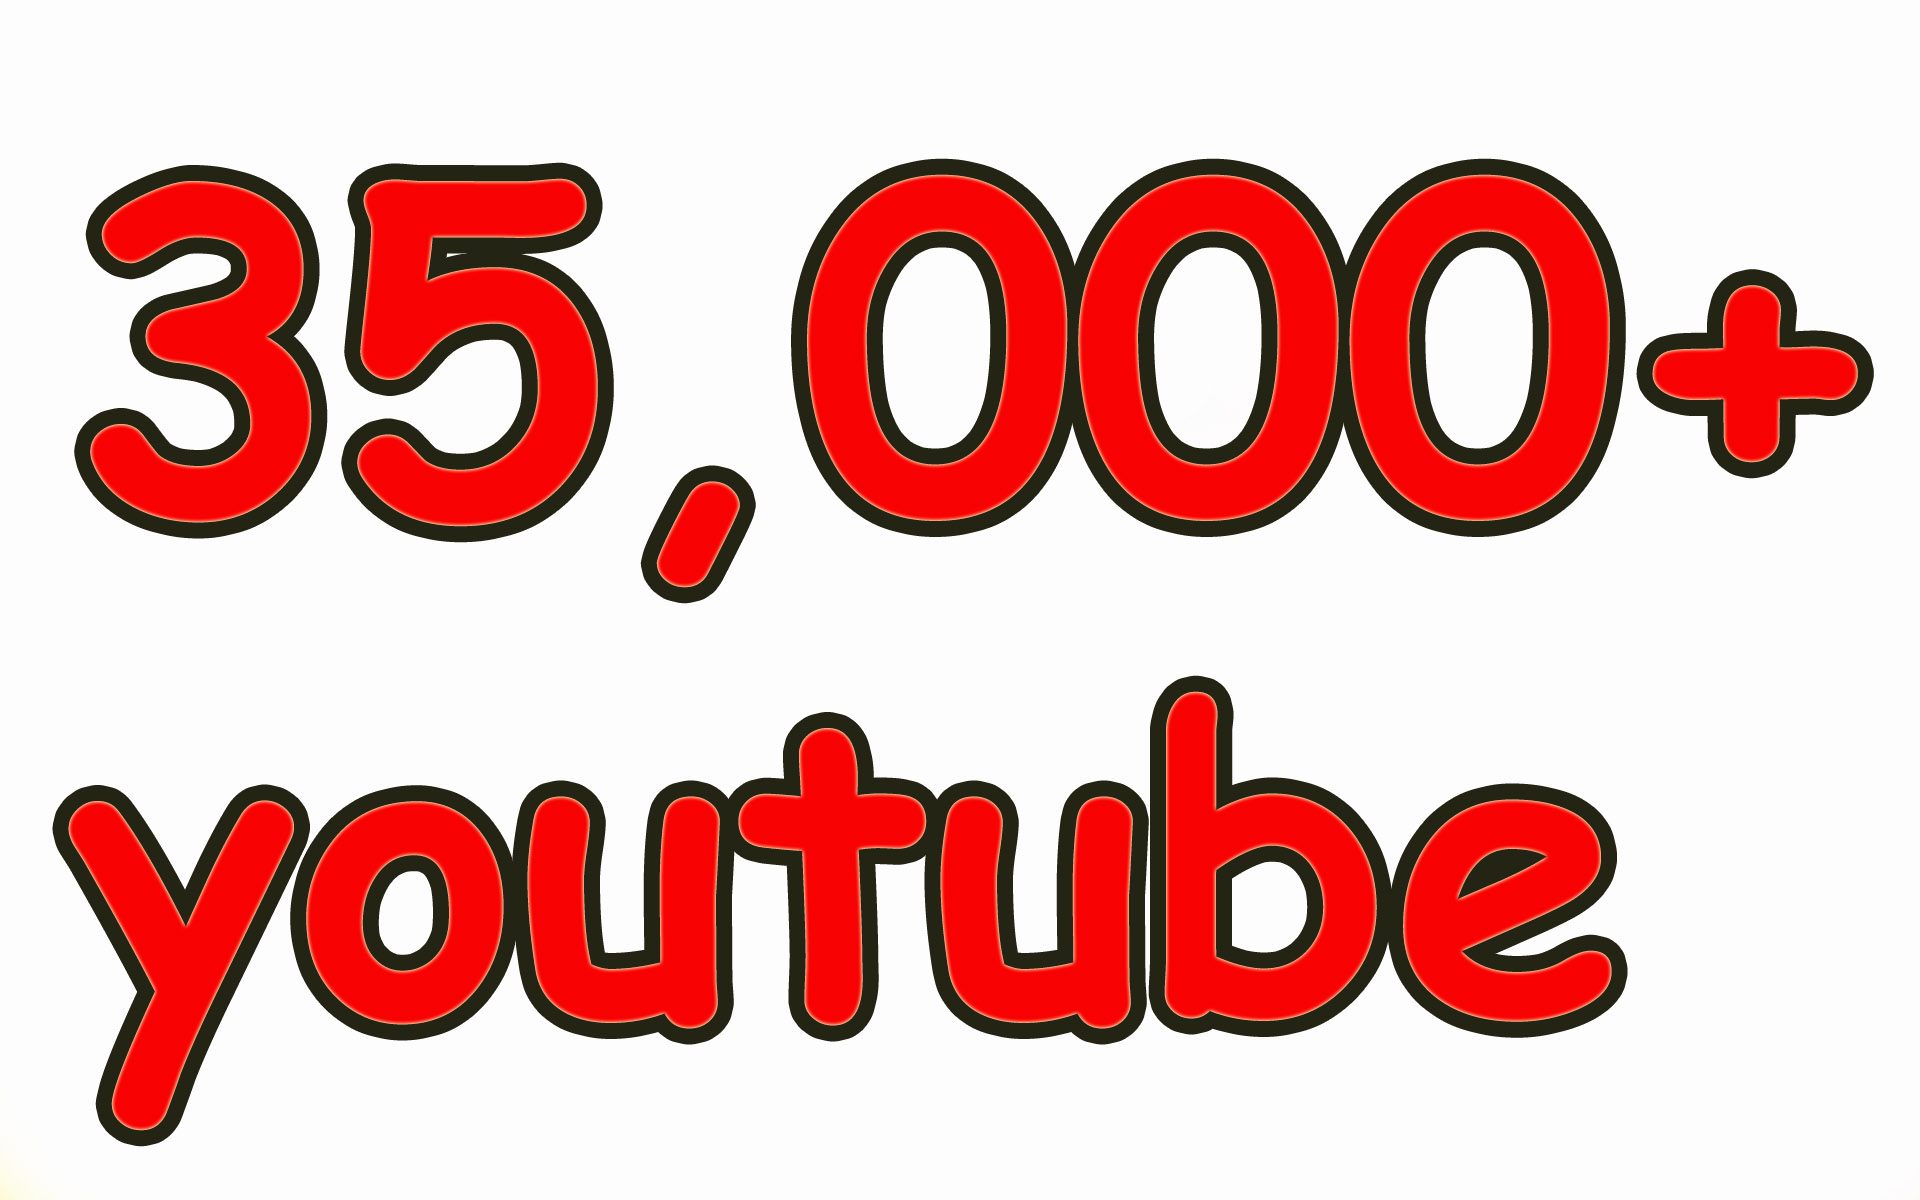 35,000 Nondrop High Quality youtube video views